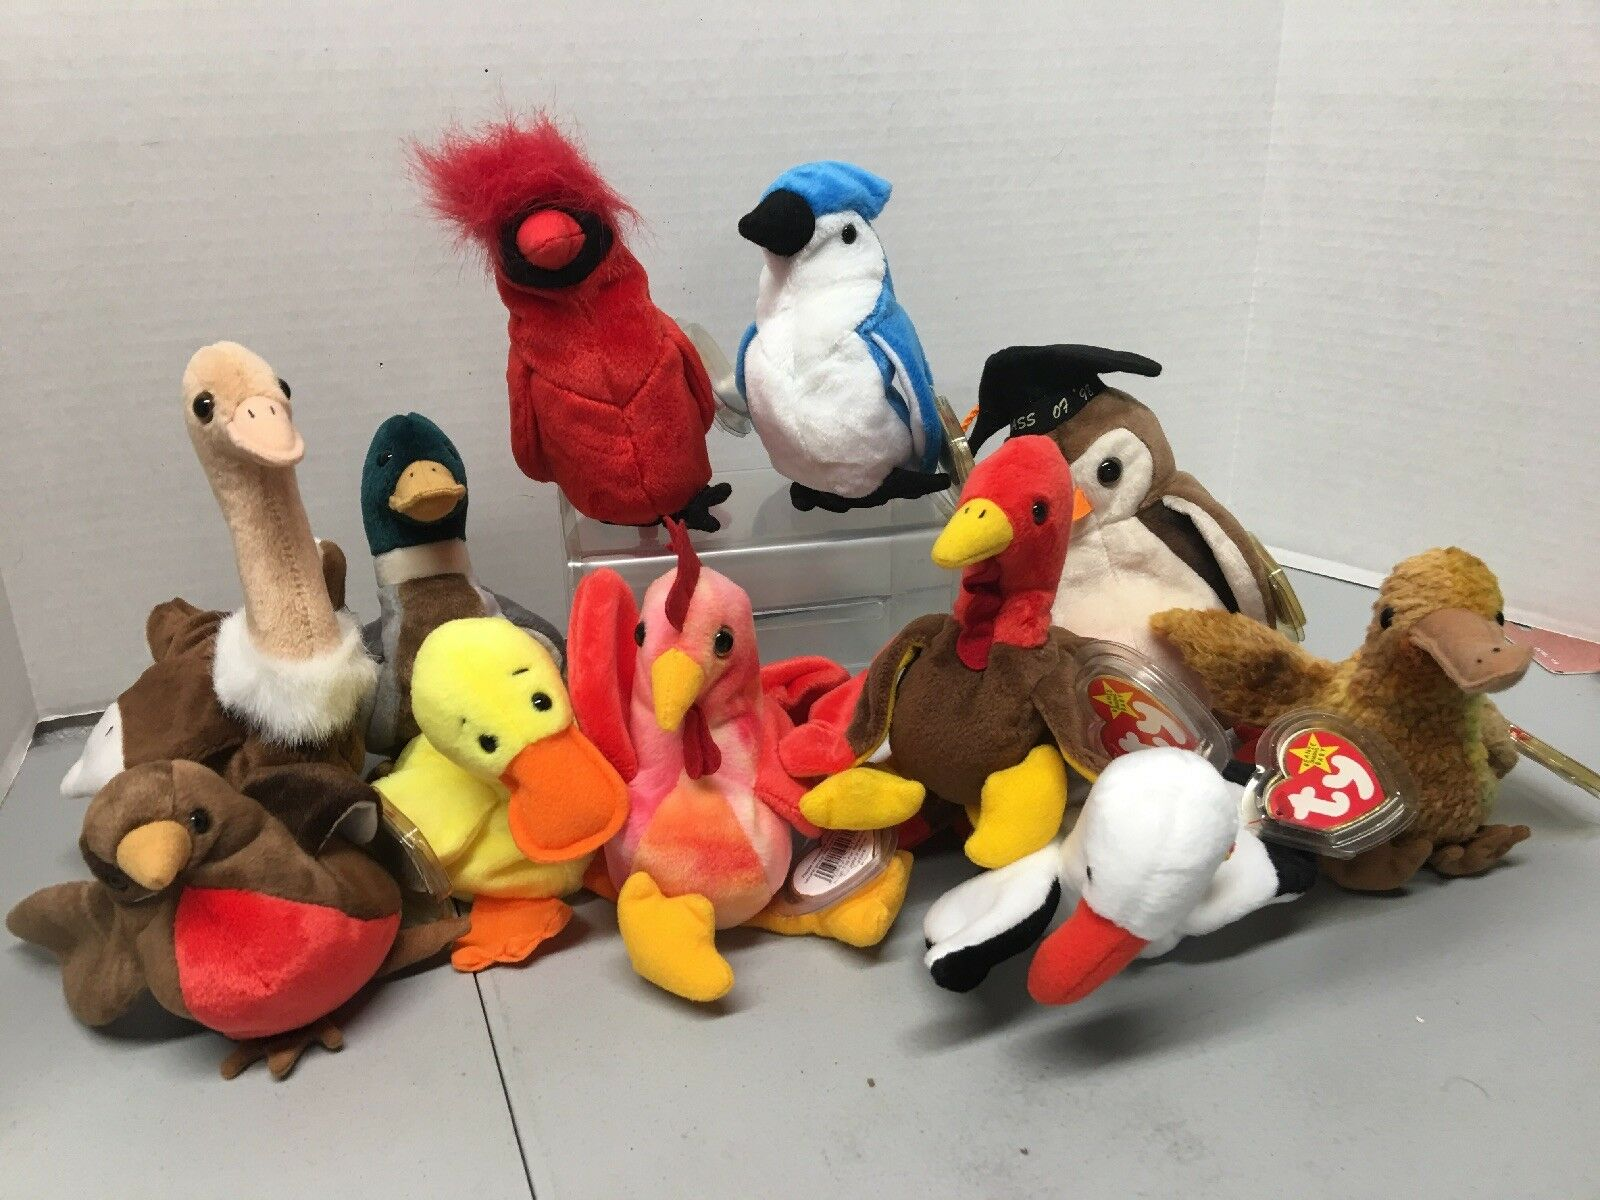 Extremely Rare Ty Beanie Baby Mac The Cardinal. Plus Others As A Set